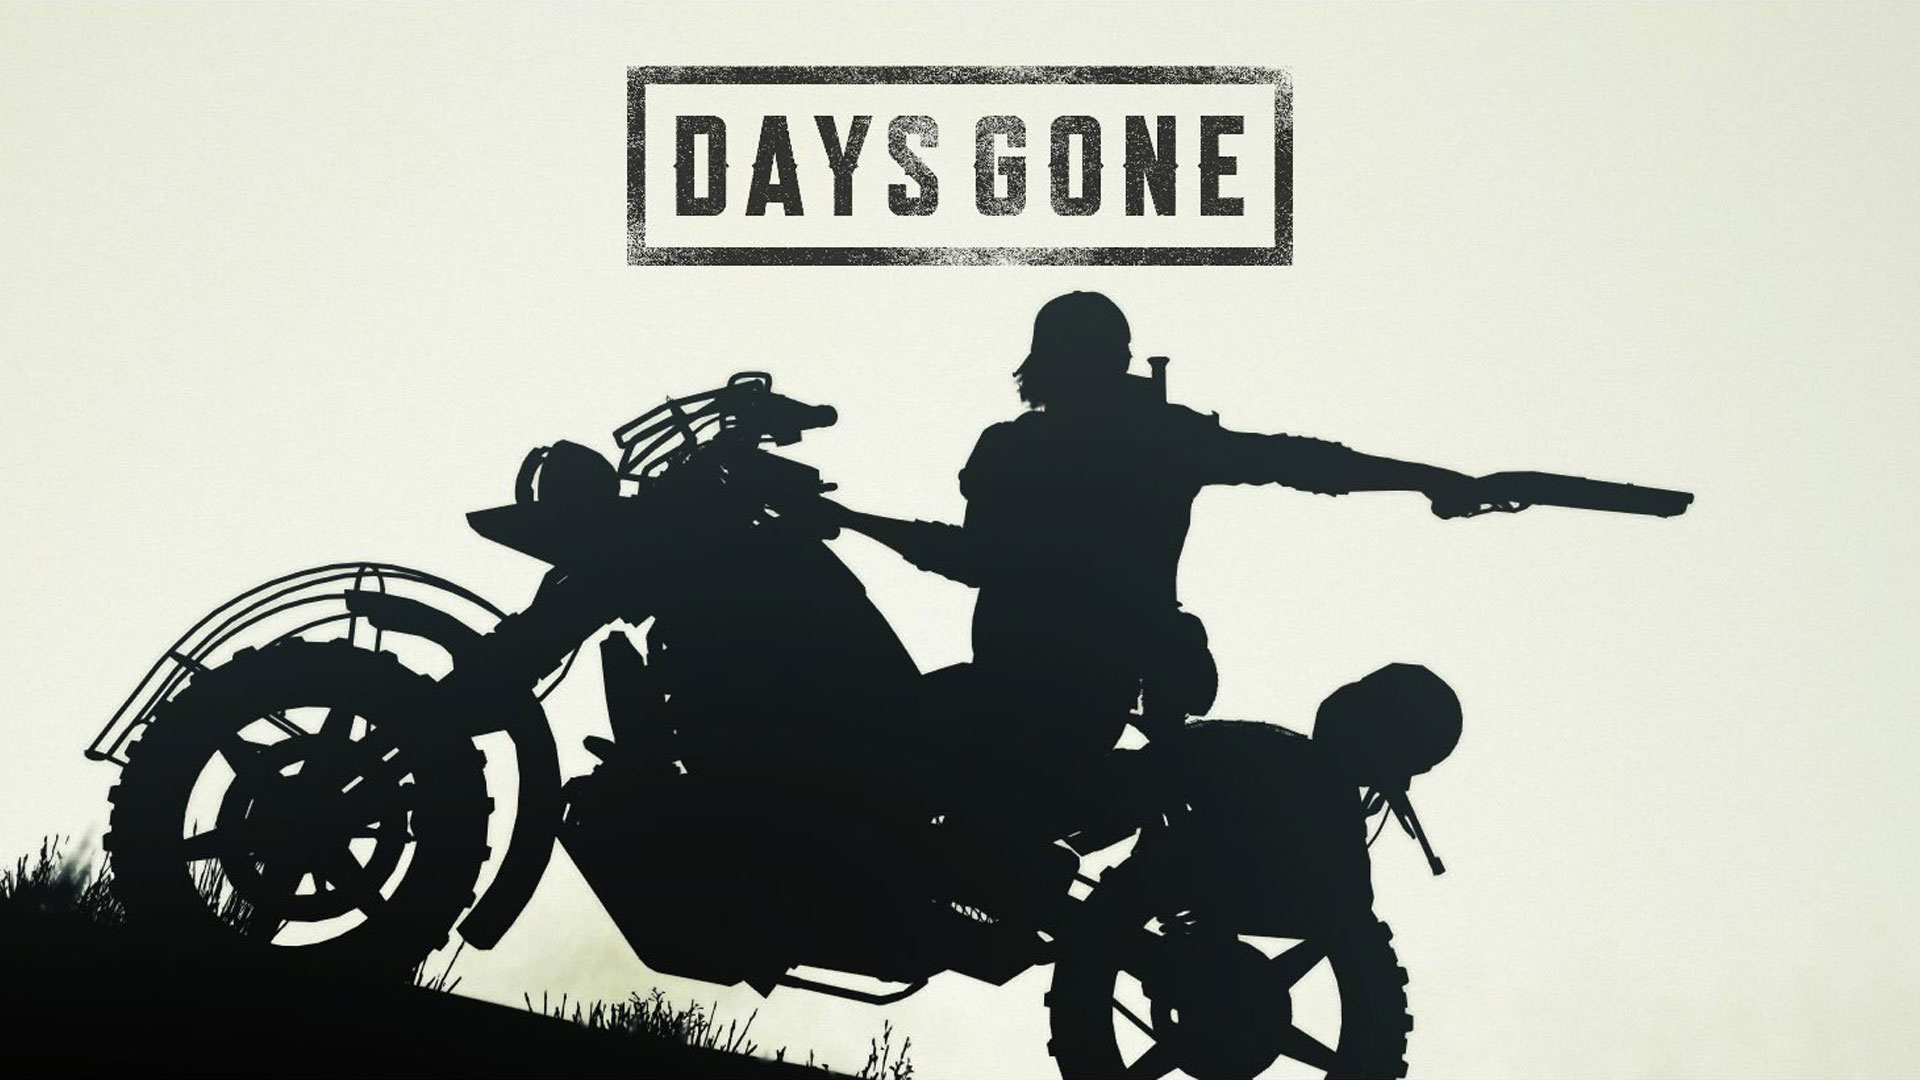 Free Days Gone Wallpaper in 1920x1080